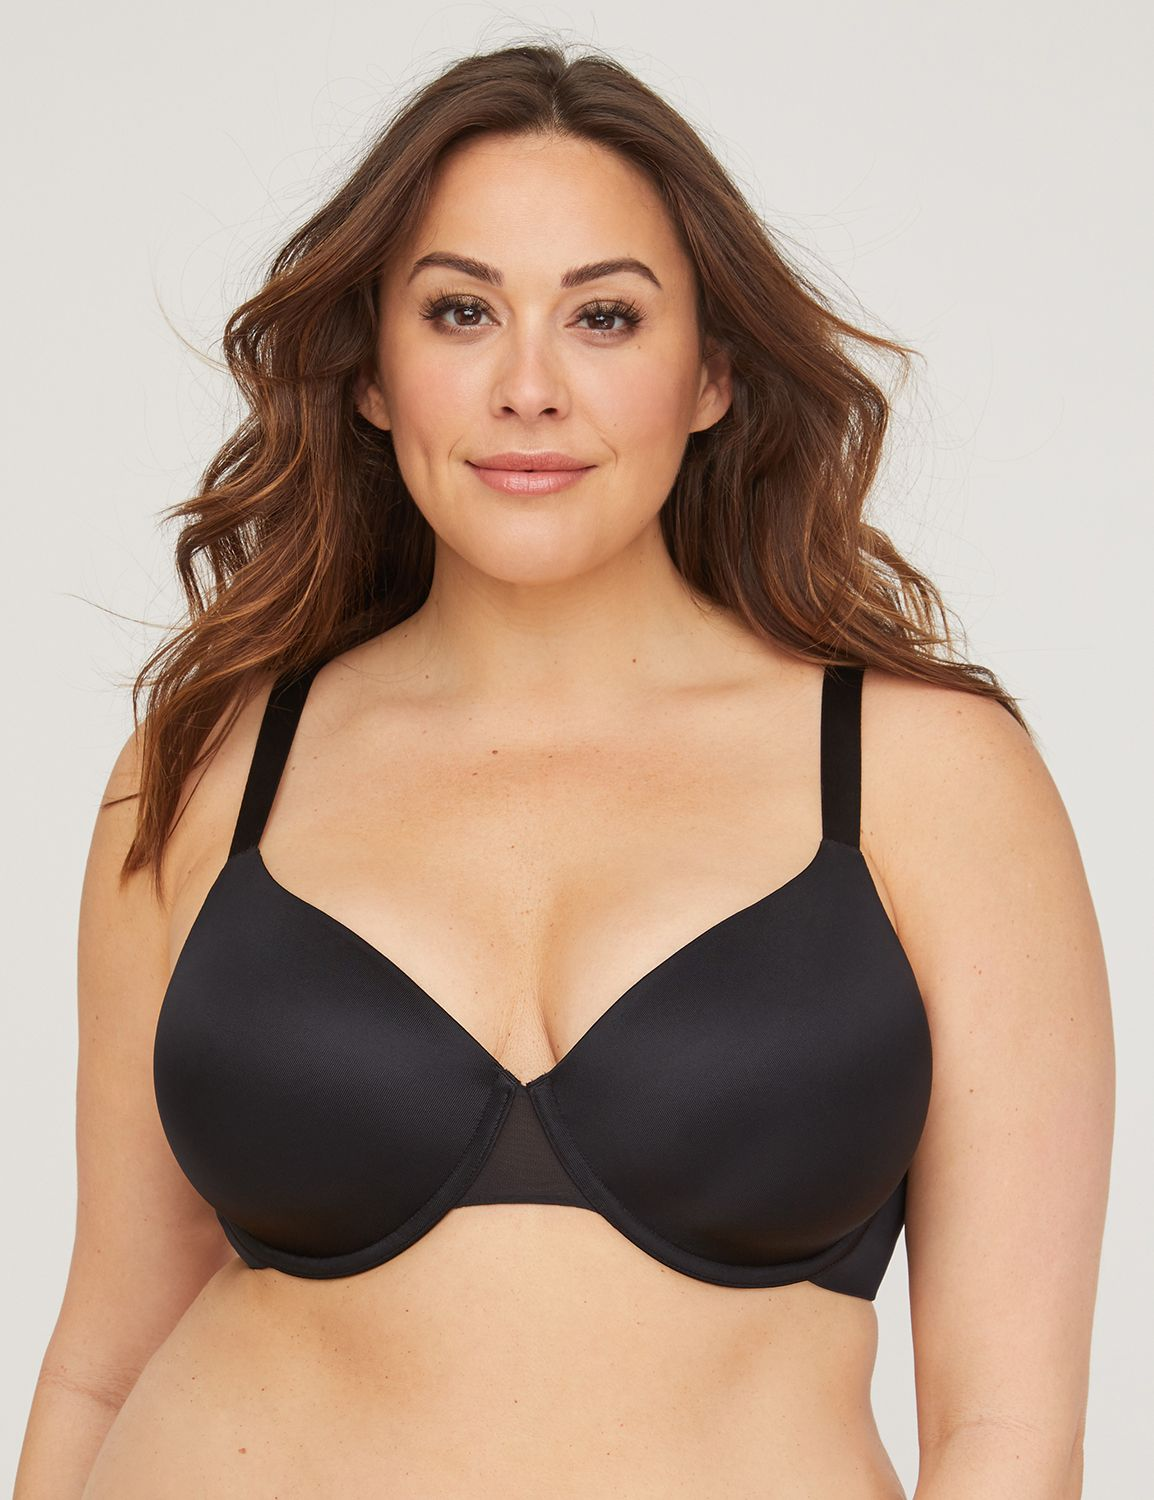 Underwire Perfect Fit T-Shirt Bra Underwire Perfect Fit T-Shirt Bra MP-300043269